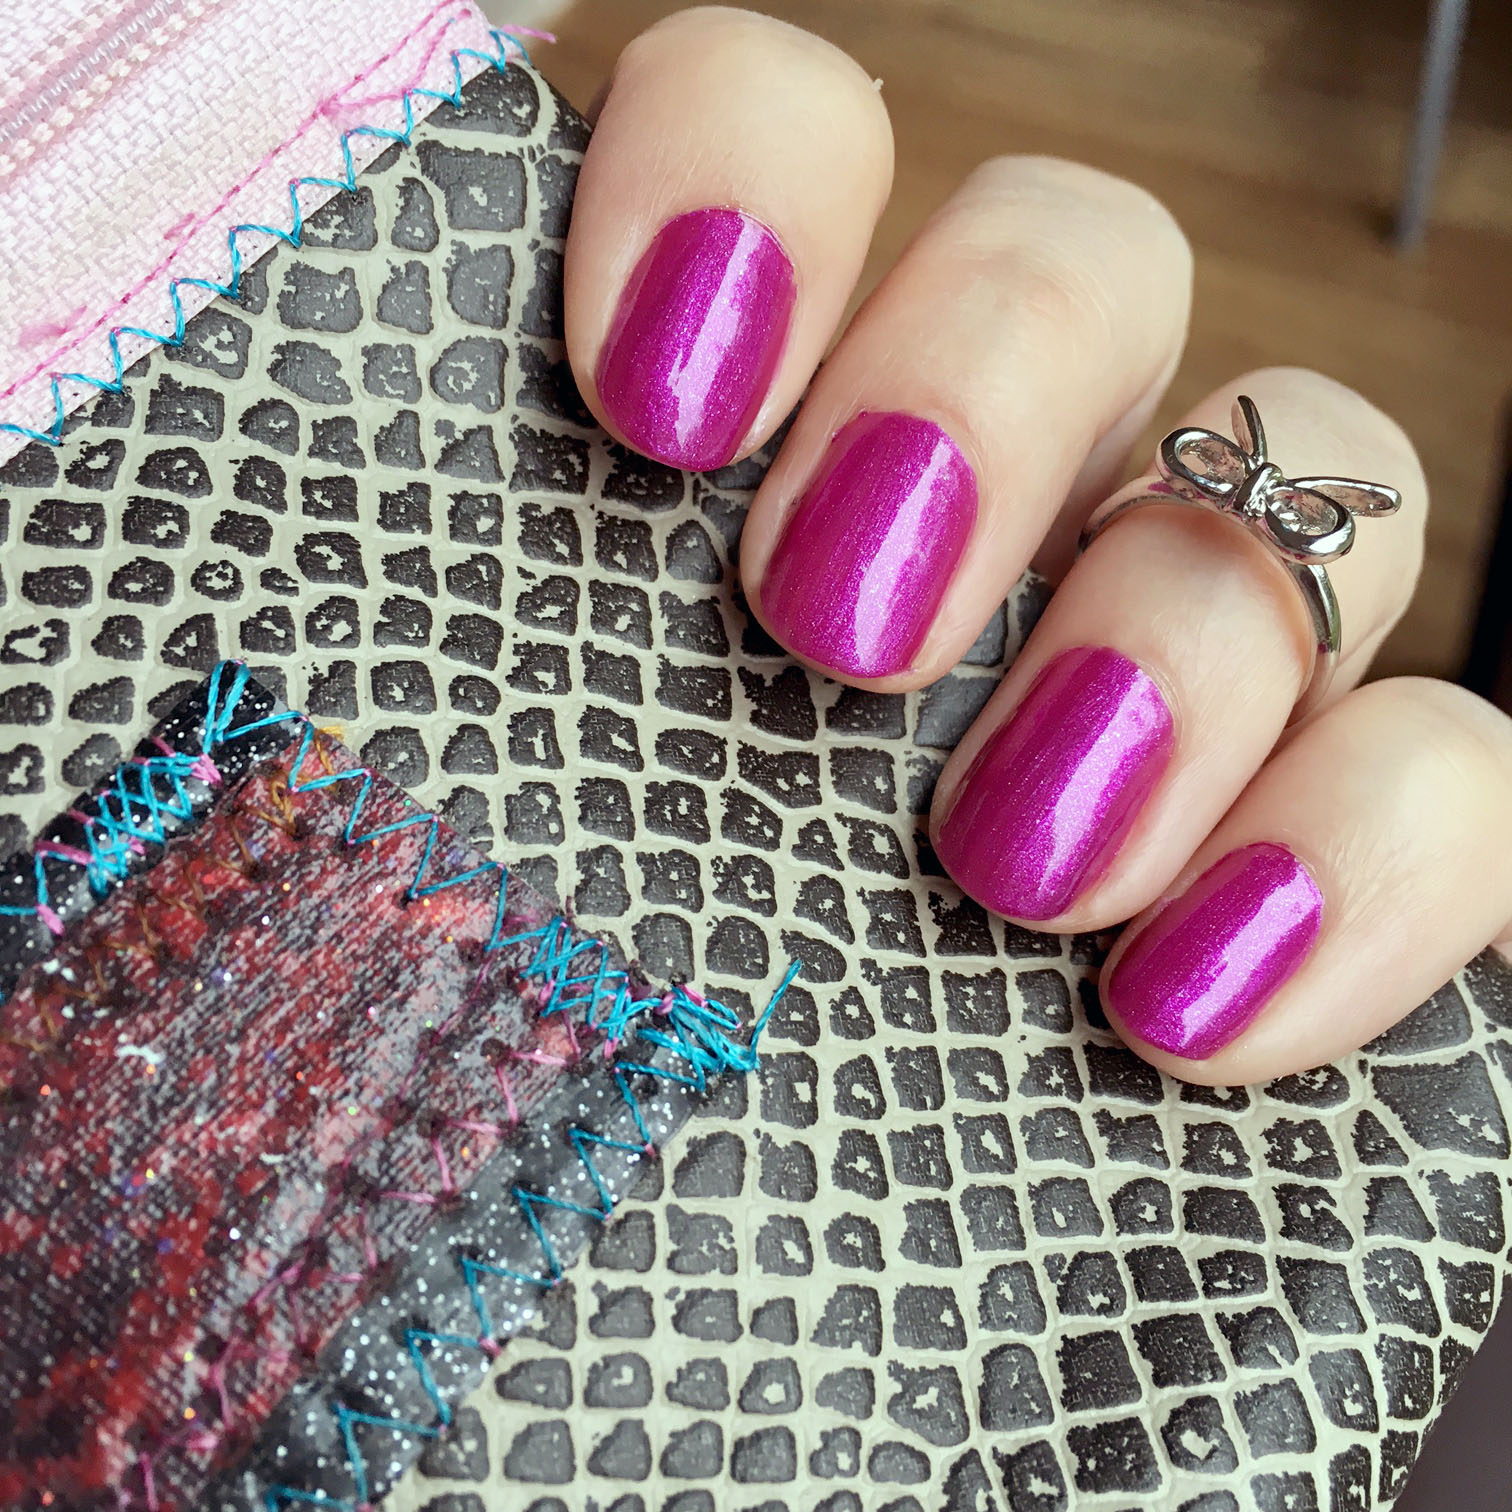 Nails Of The Day Snails Raspberry Pie Non Toxic Nail